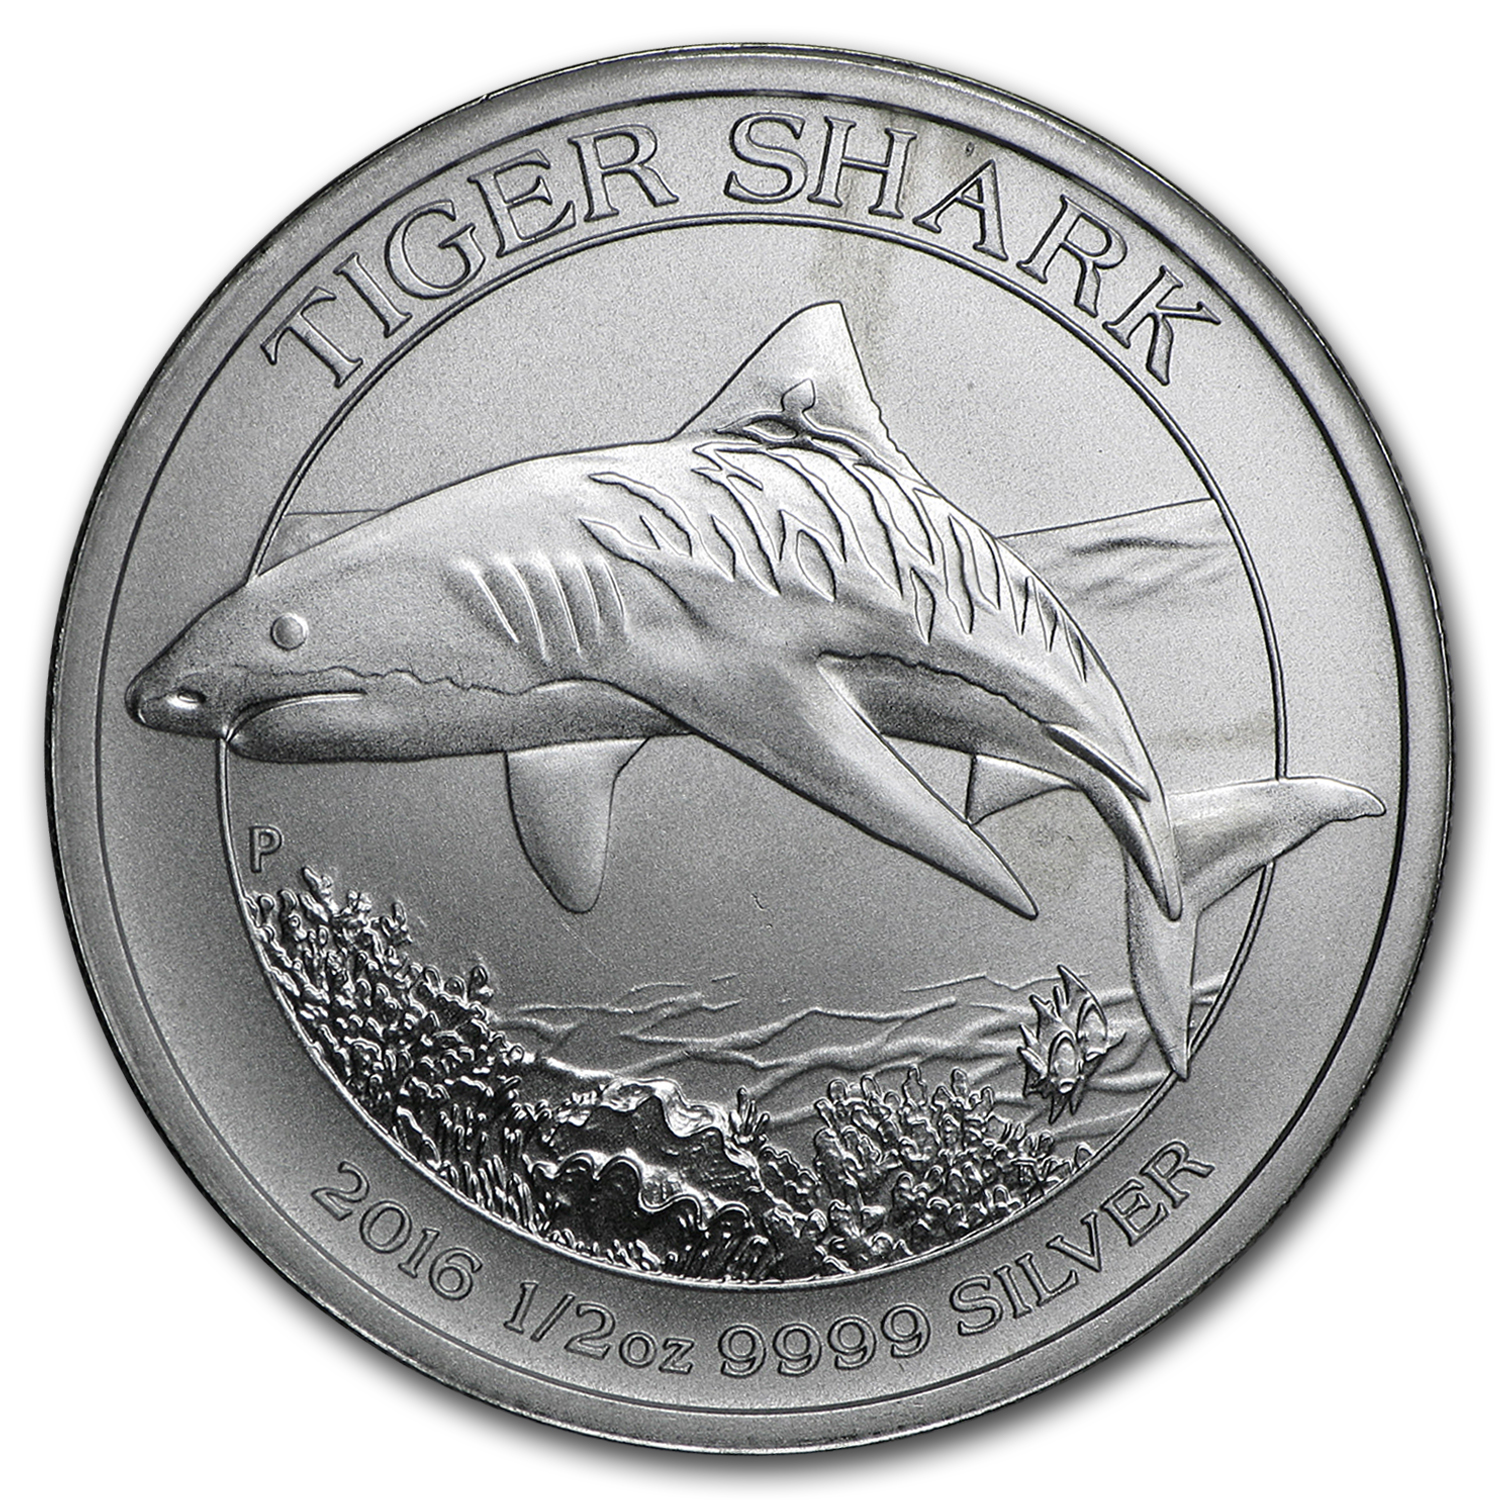 2016 Australia 1/2 oz Silver Tiger Shark (Abrasions/Damaged)